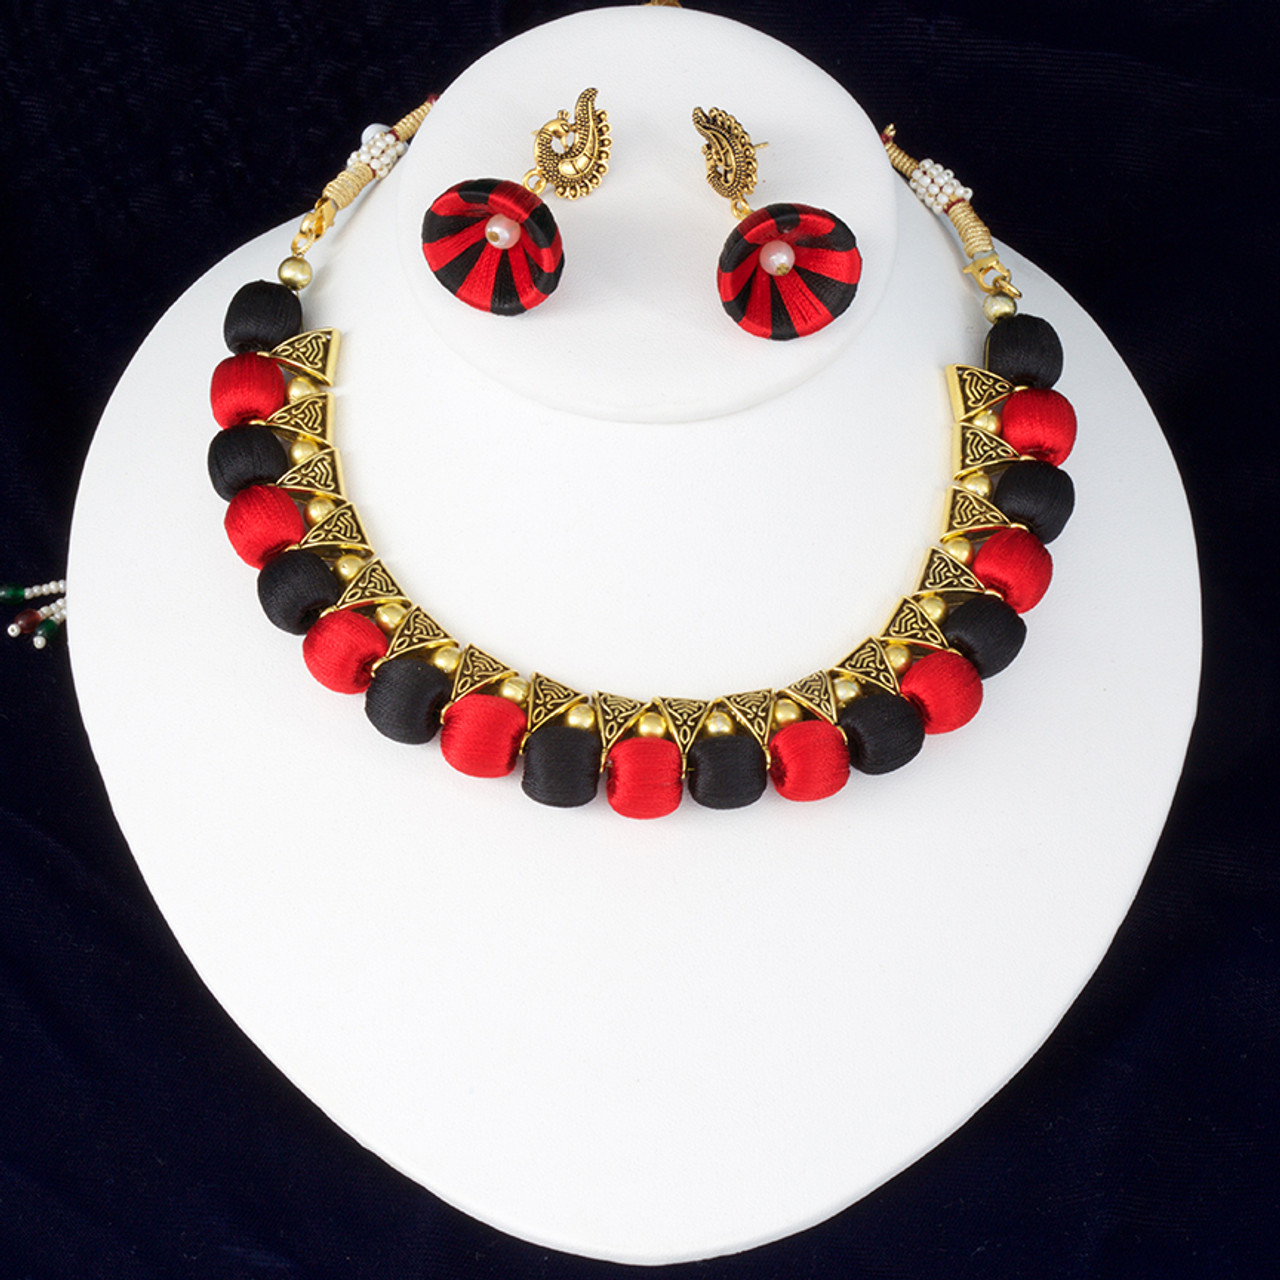 1b7d1061f0a38 Indian Silk Thread Jewelry Set Antique Choker Necklace and Matching Jhumka  Earrings Combo in Red and Black Color